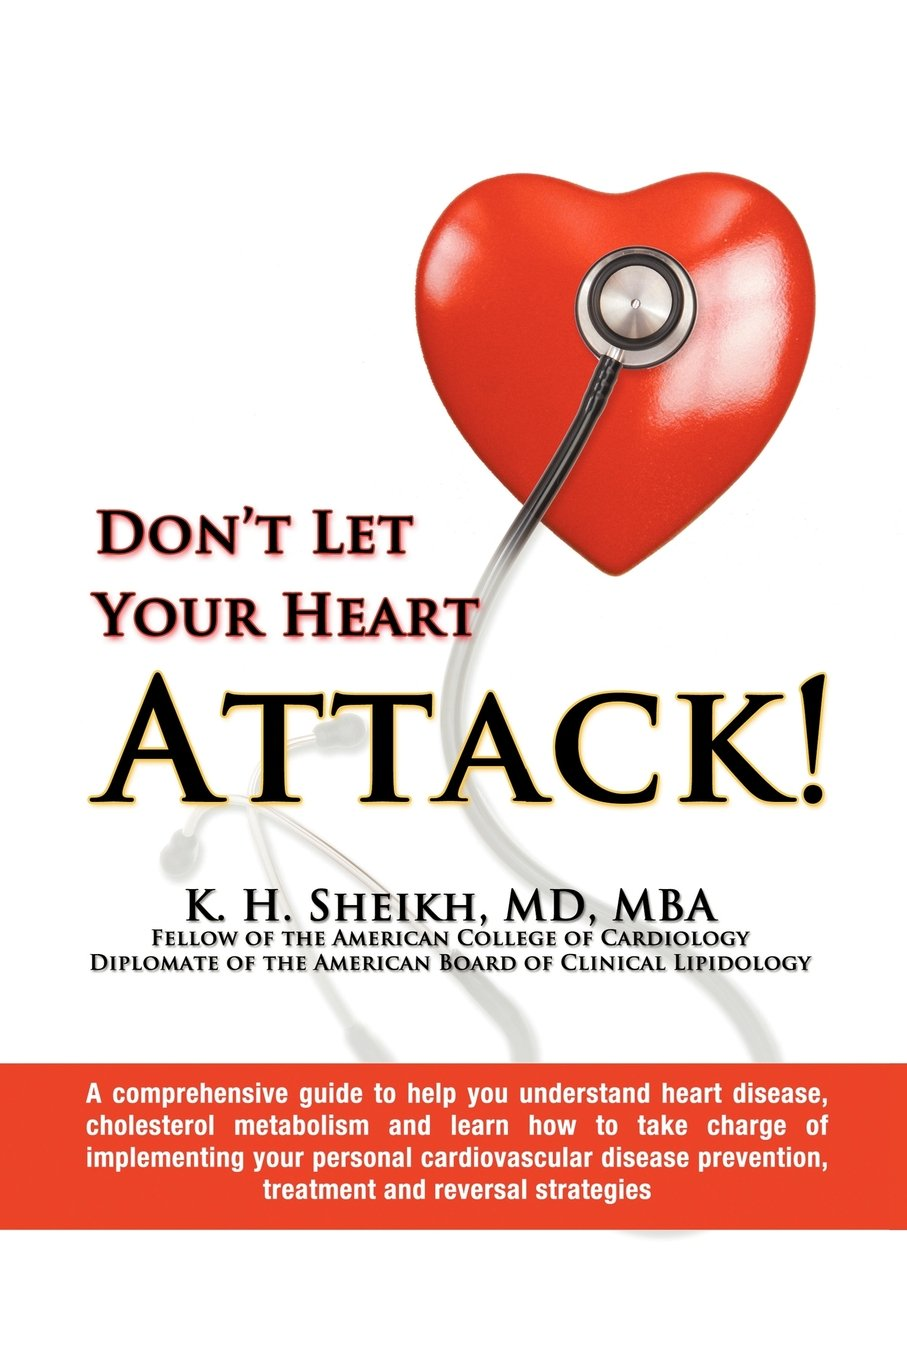 DON'T LET YOUR HEART ATTACK! A comprehensive guide to help